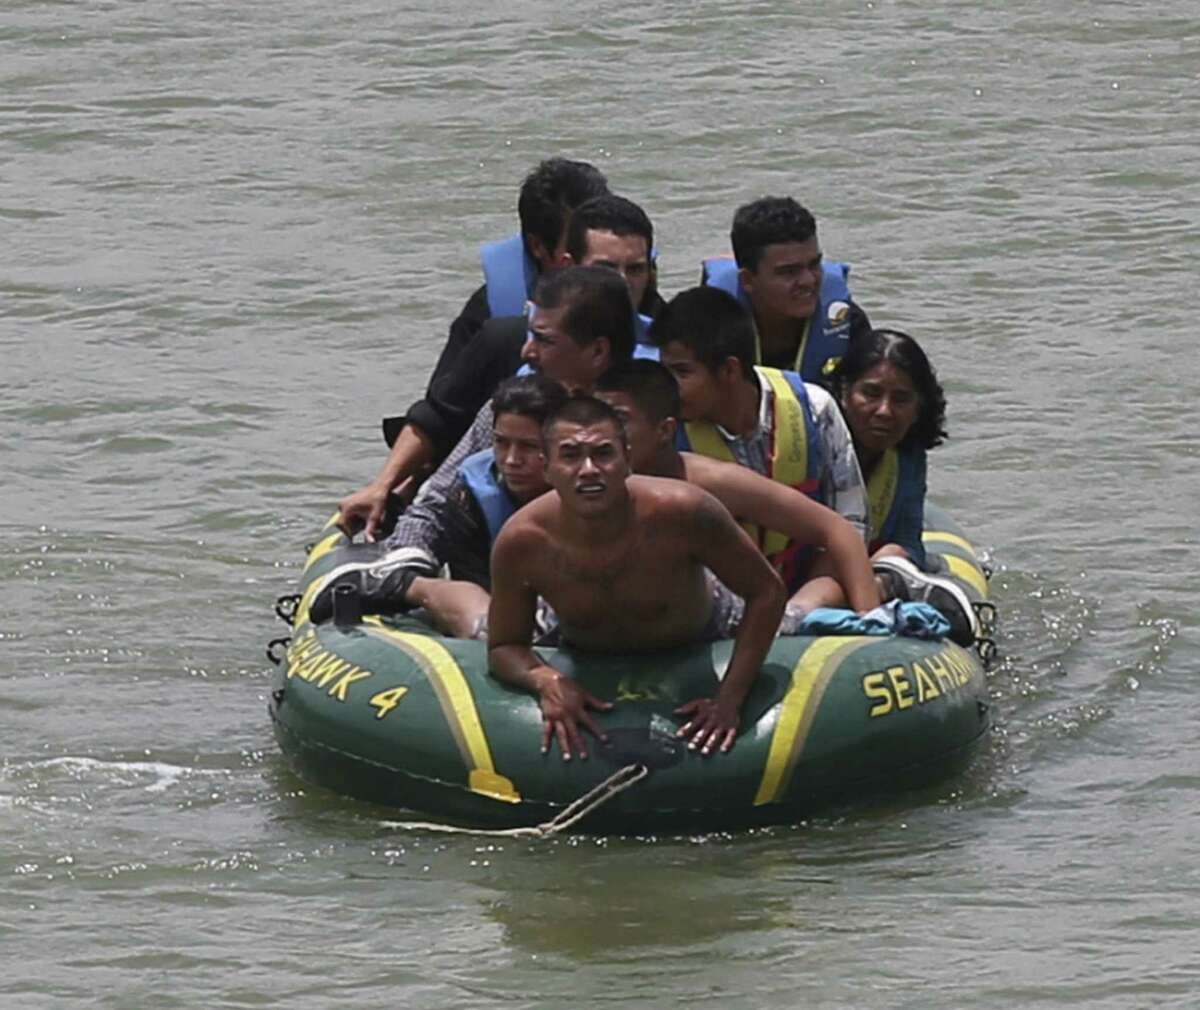 Using an inflatable raft, smugglers, carry immigrants across the Rio Grande near the international bridge in Roma. Law officials say higher-risk smuggling operations are moving into Starr County to avoid areas now saturated with officers.